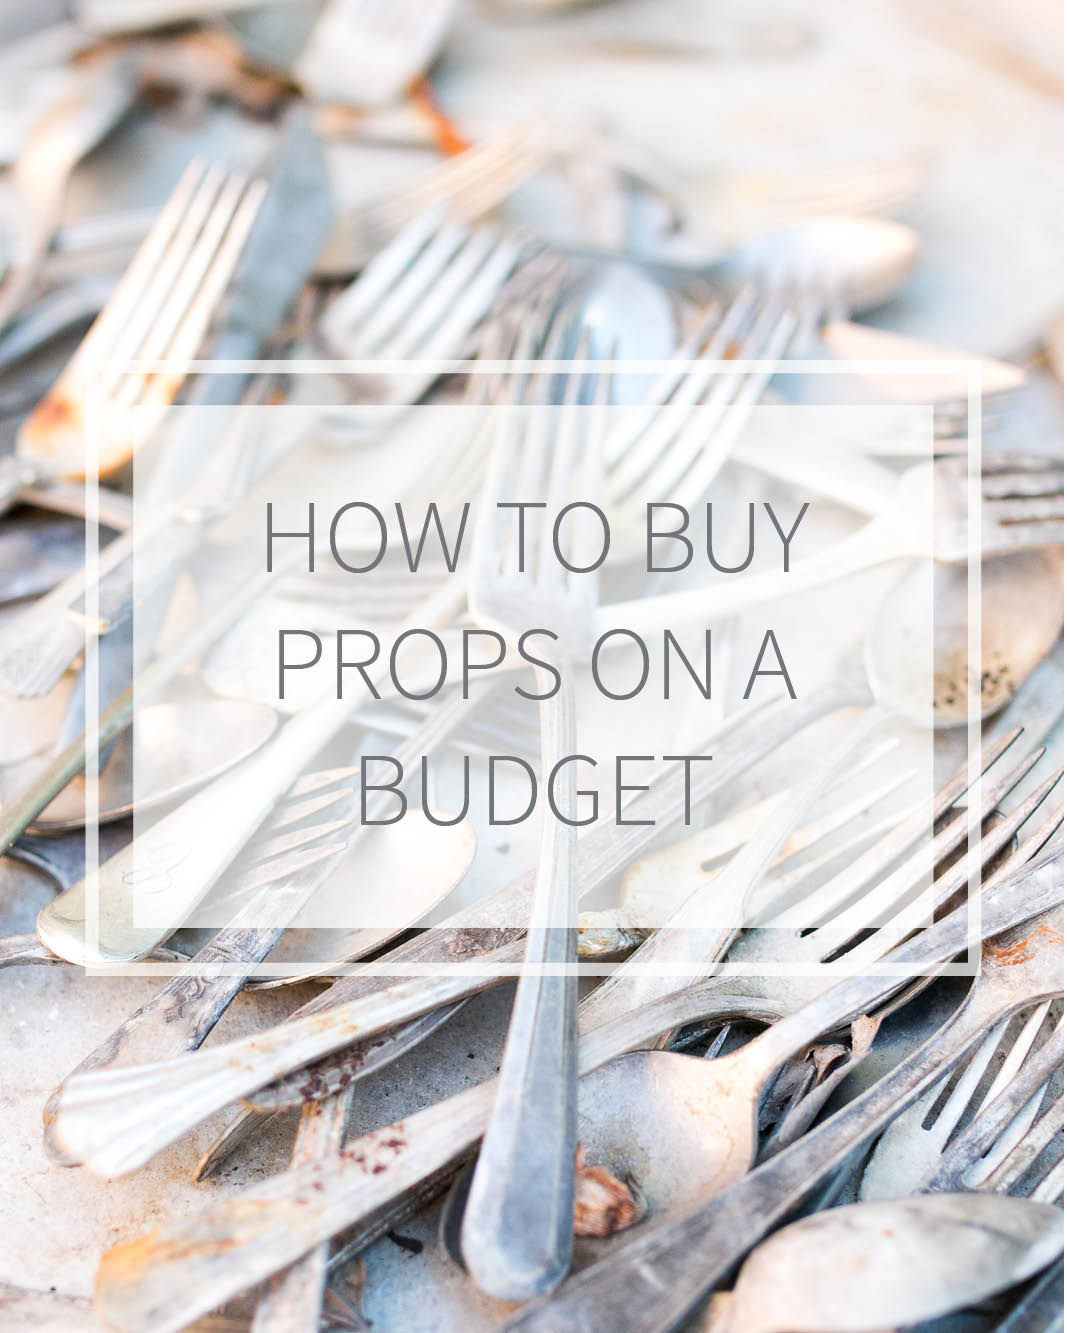 how to buy props on a budget